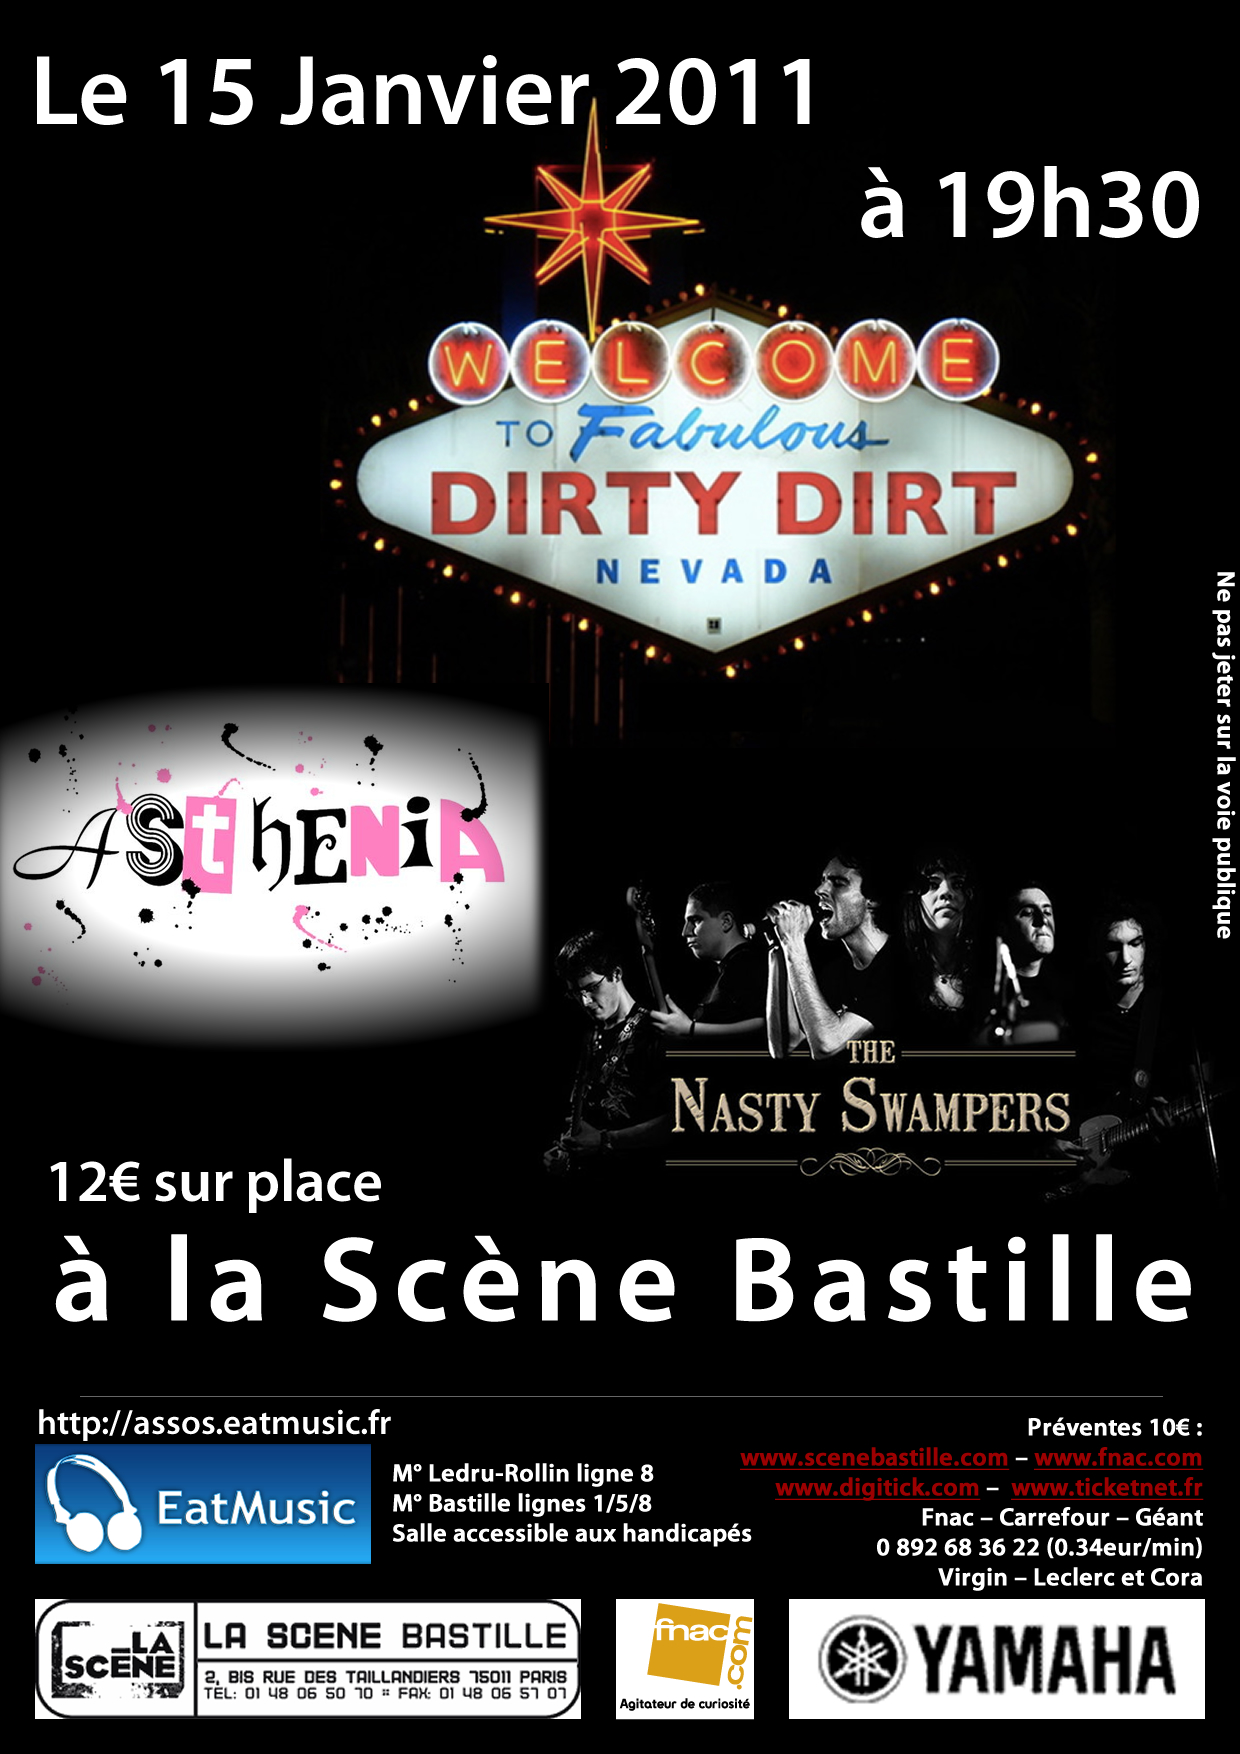 Concert des Dirty Dirt, Asthenia et The Nasty Swampers à la Scène Bastille